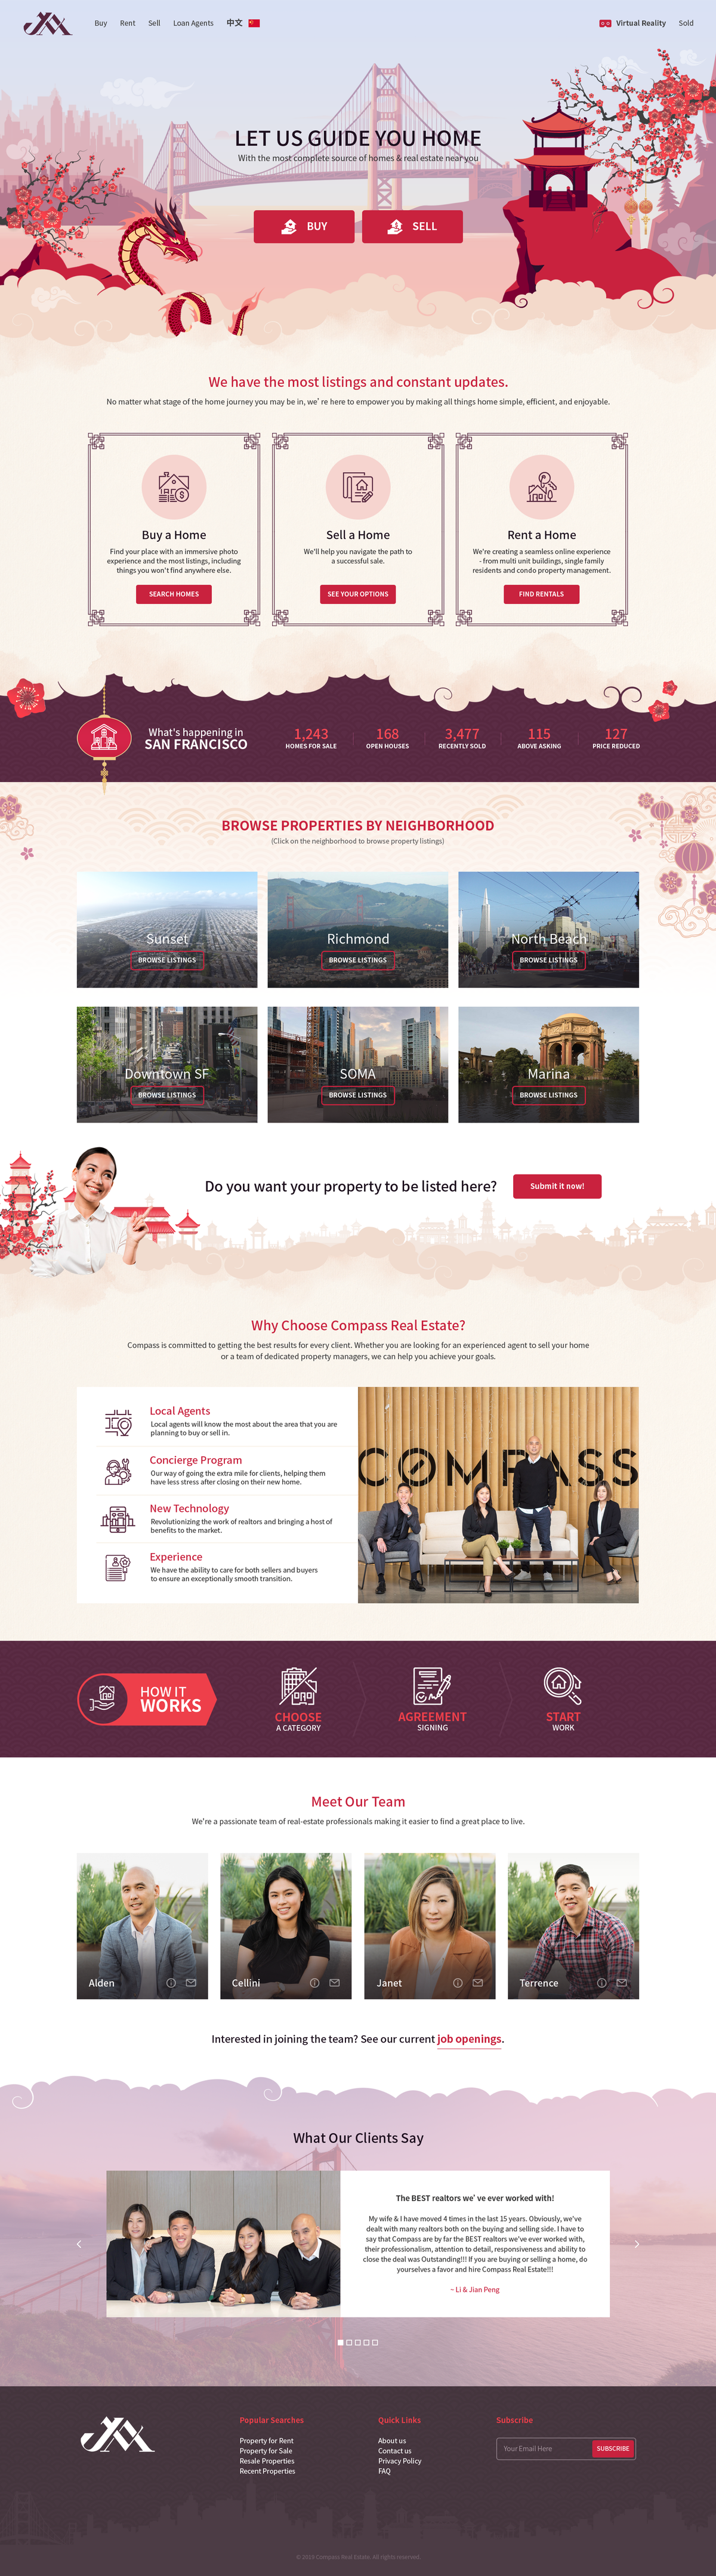 Design a cute & sophisticated Chinese Real Estate webpage